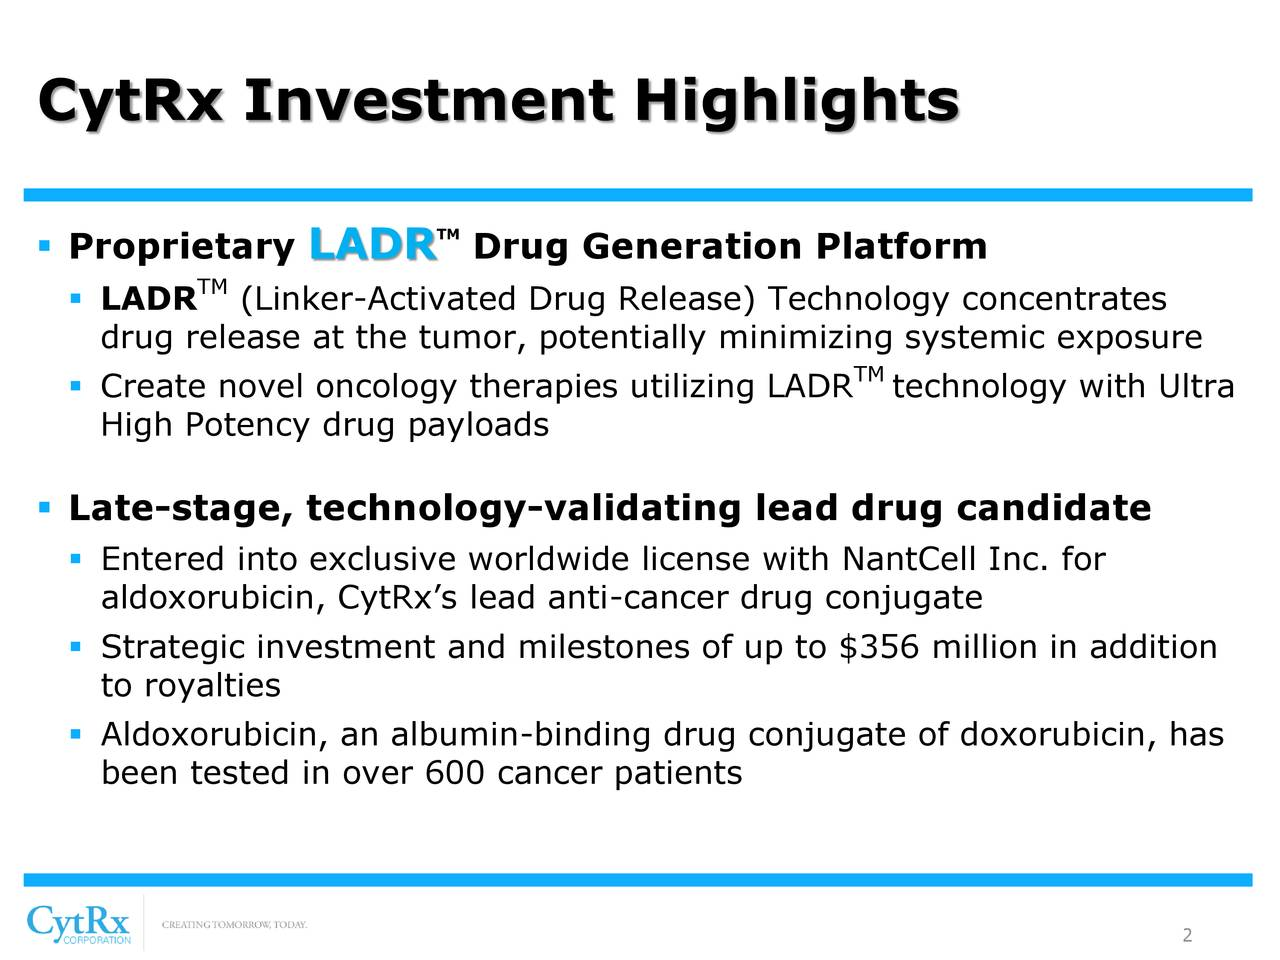 TM  Proprietary LADR Drug Generation Platform TM  LADR (Linker-Activated Drug Release) Technology concentrates drug release at the tumor, potentially minimizing systemic exposure  Create novel oncology therapies utilizing LADtechnology with Ultra High Potency drug payloads  Late-stage, technology-validating lead drug candidate  Entered into exclusive worldwide license with NantCell Inc. for aldoxorubicin, CytRx's lead anti-cancer drug conjugate  Strategic investment and milestones of up to $356 million in addition to royalties  Aldoxorubicin, an albumin-binding drug conjugate of doxorubicin, has been tested in over 600 cancer patients 2